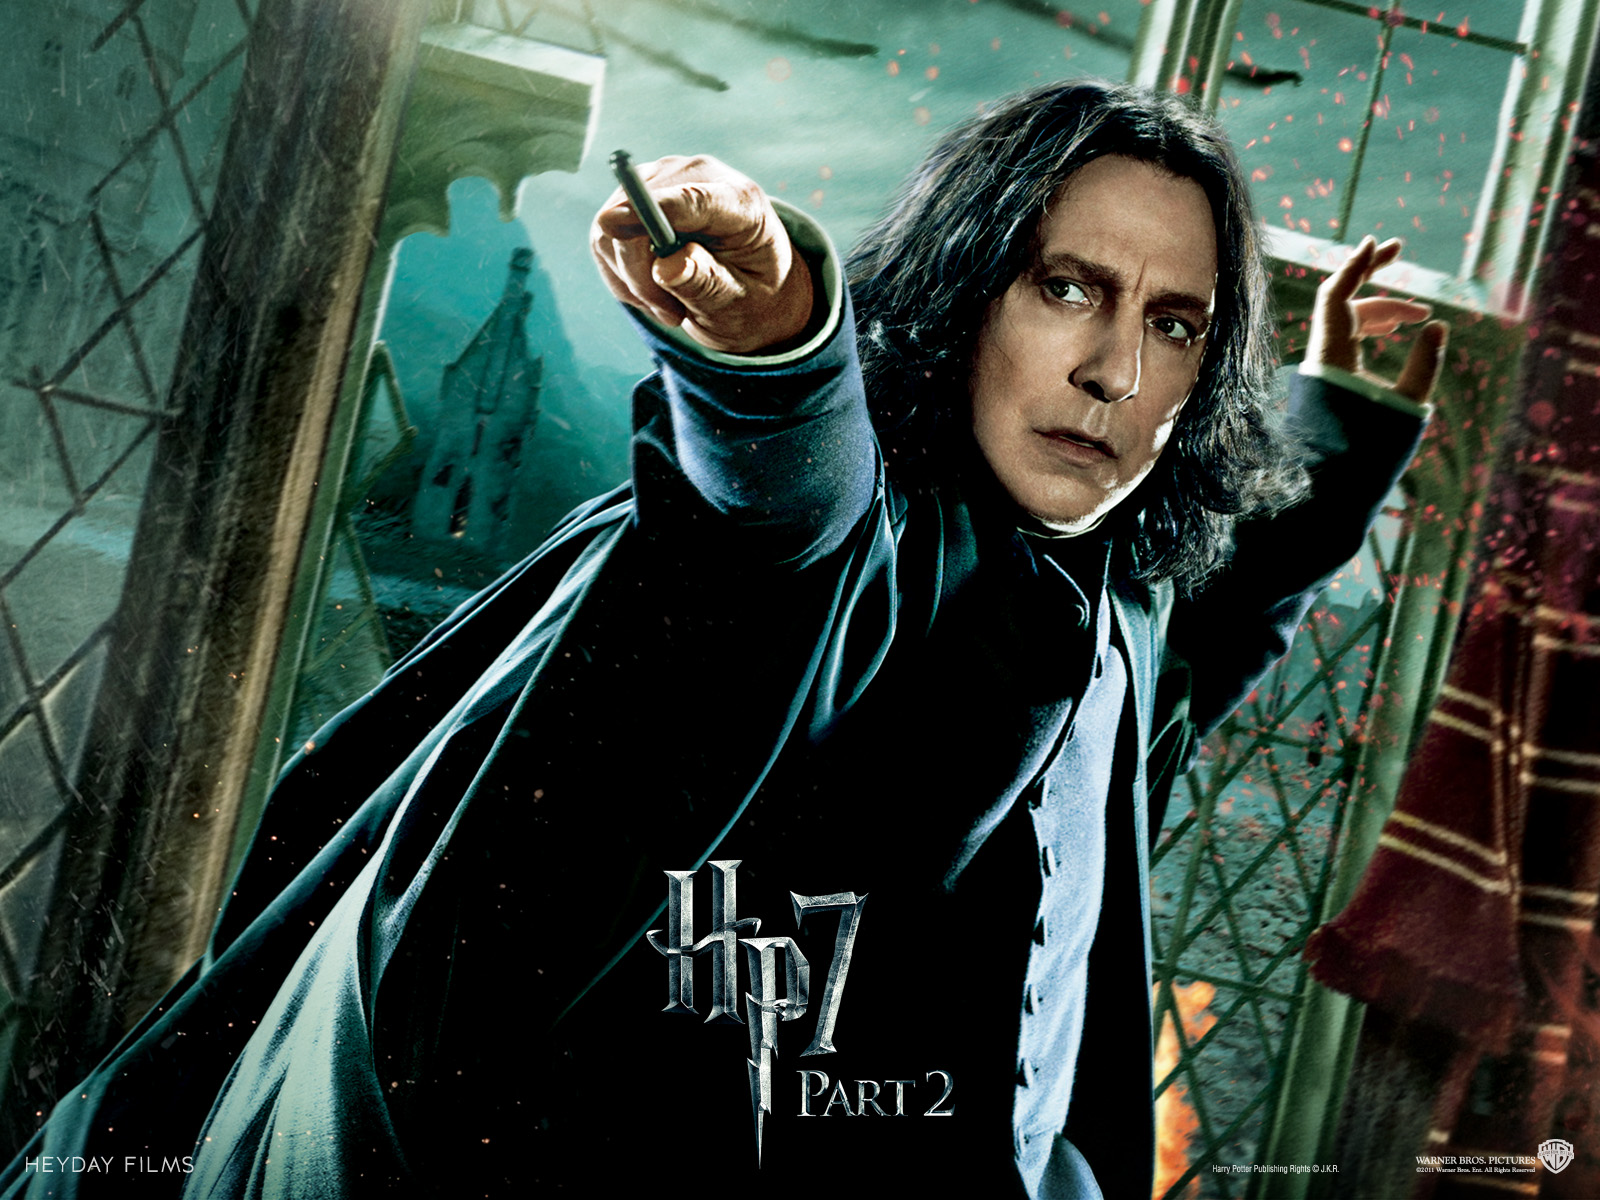 http://4.bp.blogspot.com/-kO3GYDa9Tmk/TkRFT59iSaI/AAAAAAAAFVA/wMFtJe7e9zw/s1600/Alan_Rickman_in_Harry_Potter_and_the_Deathly_Hallows%2B_Part_2_Wallpaper_11_1024.jpg